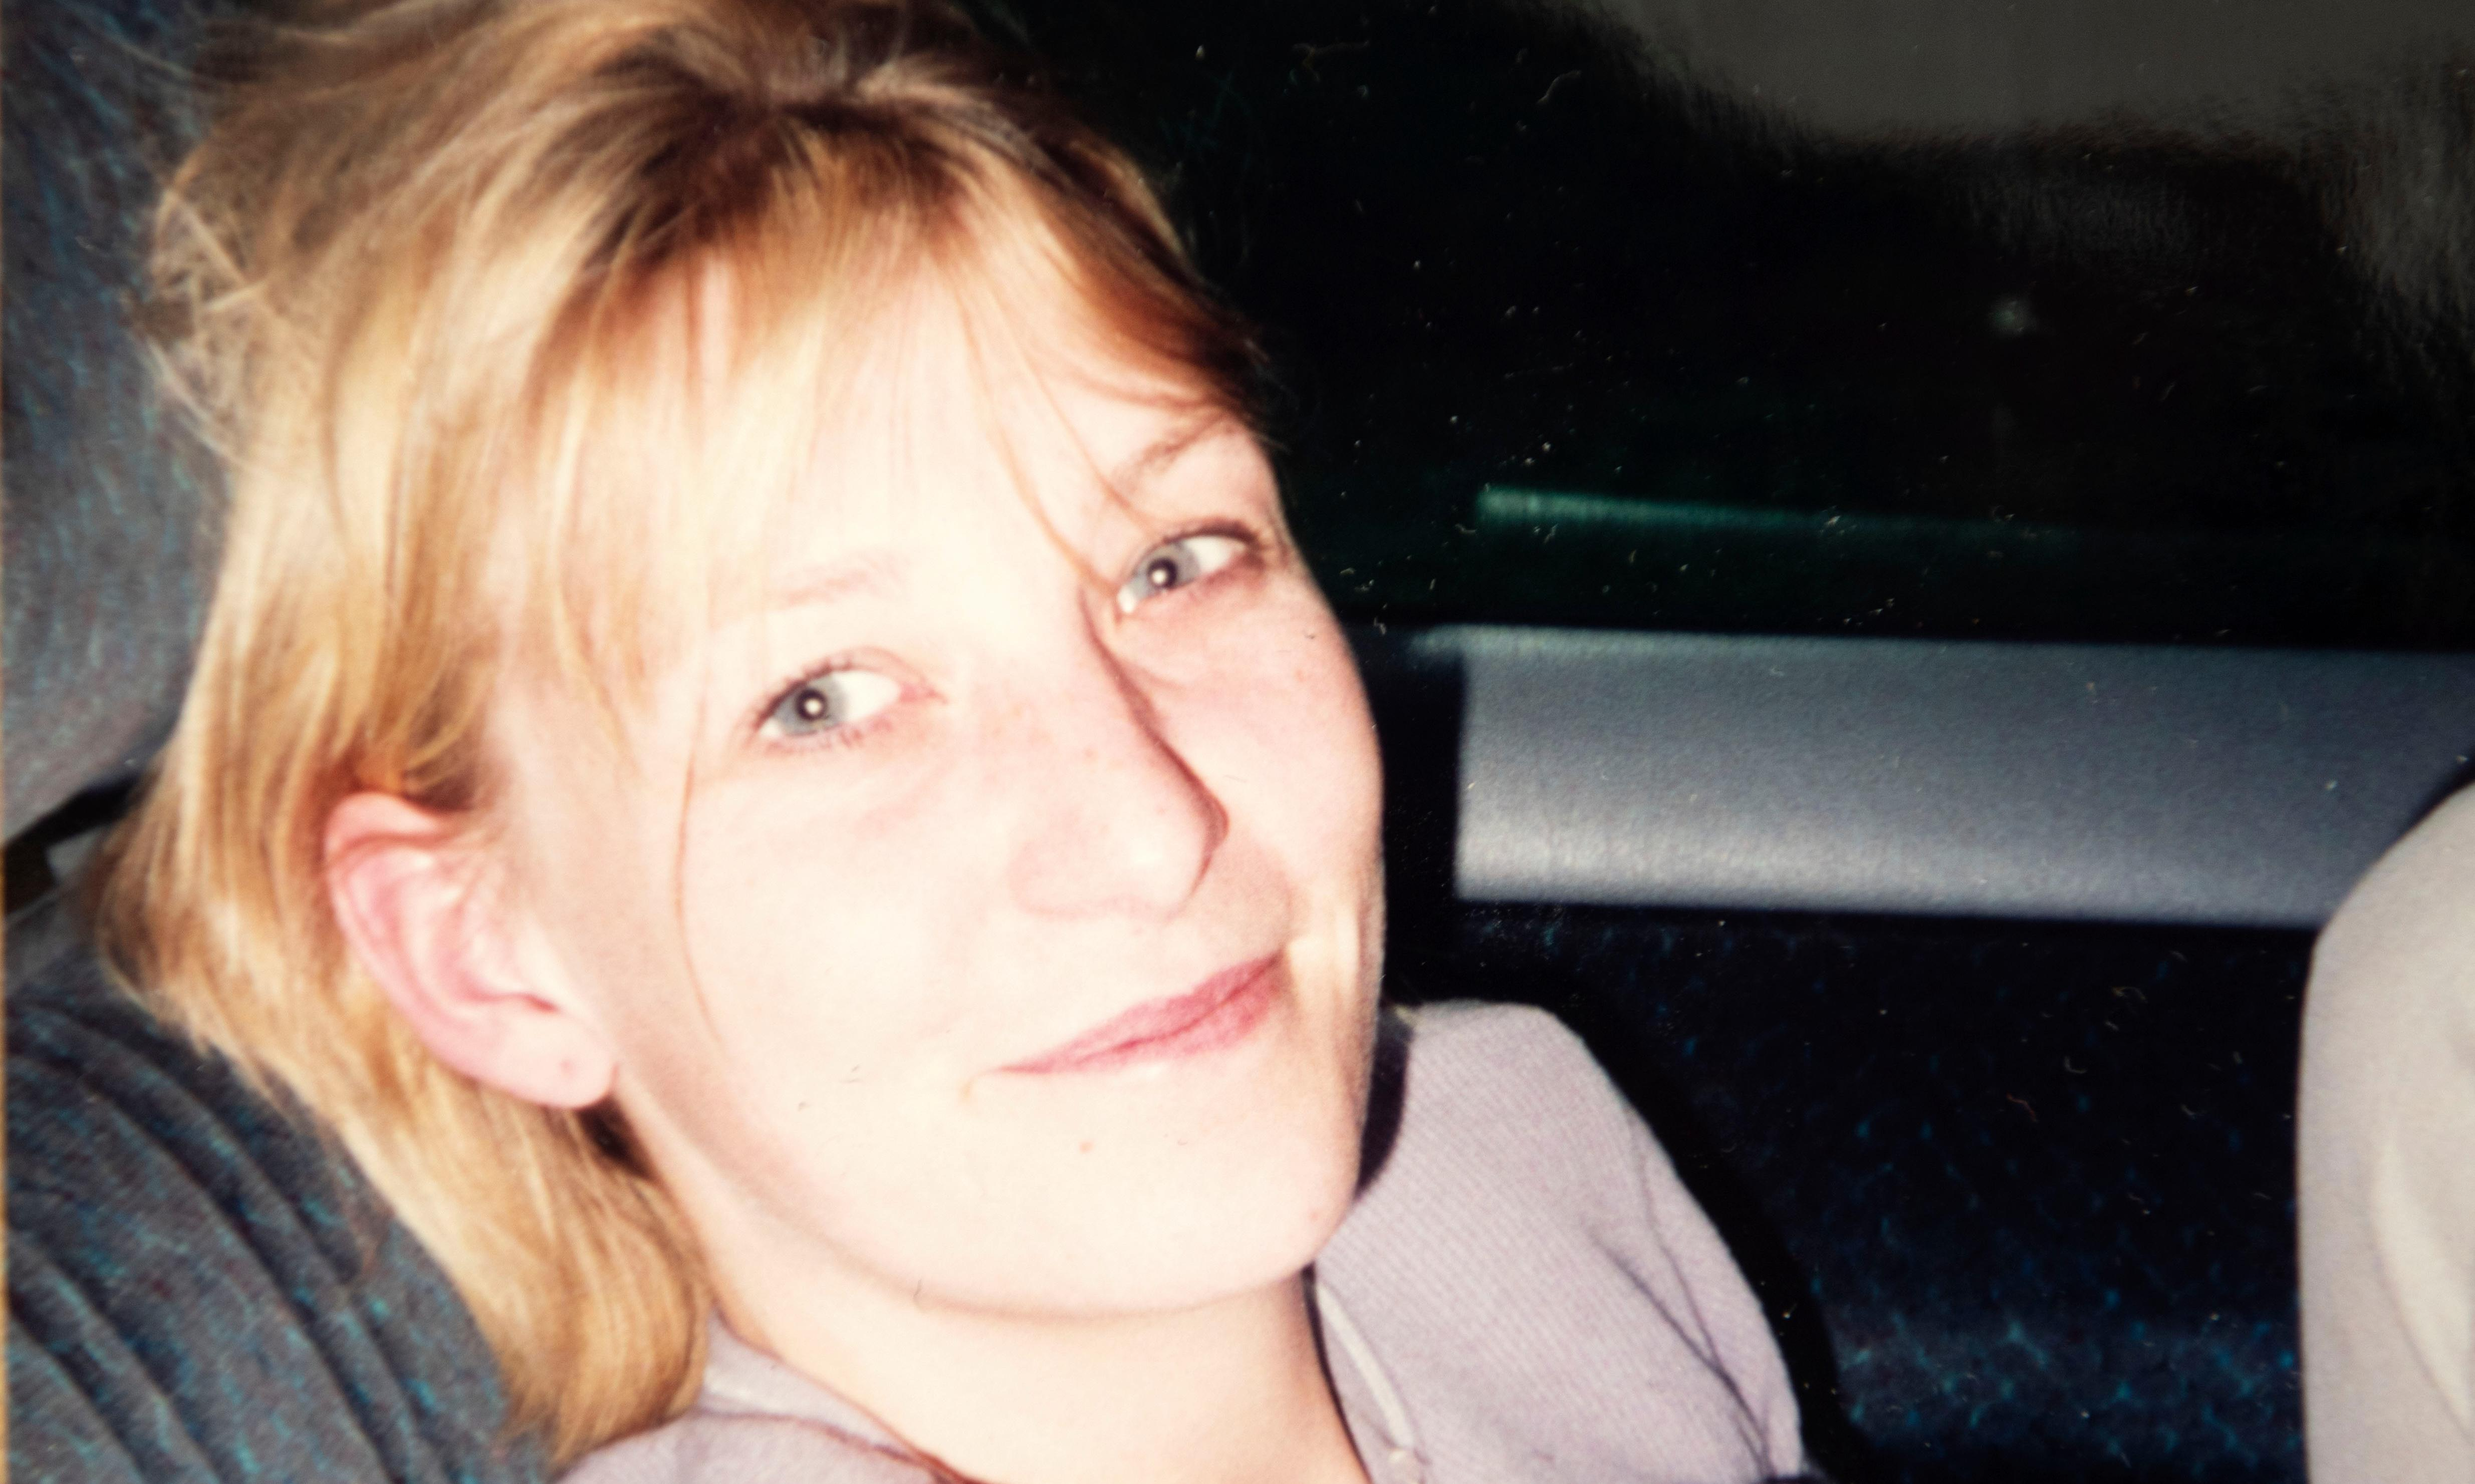 Dawn Sturgess death from novichok: duty to protect public 'not breached' says coroner